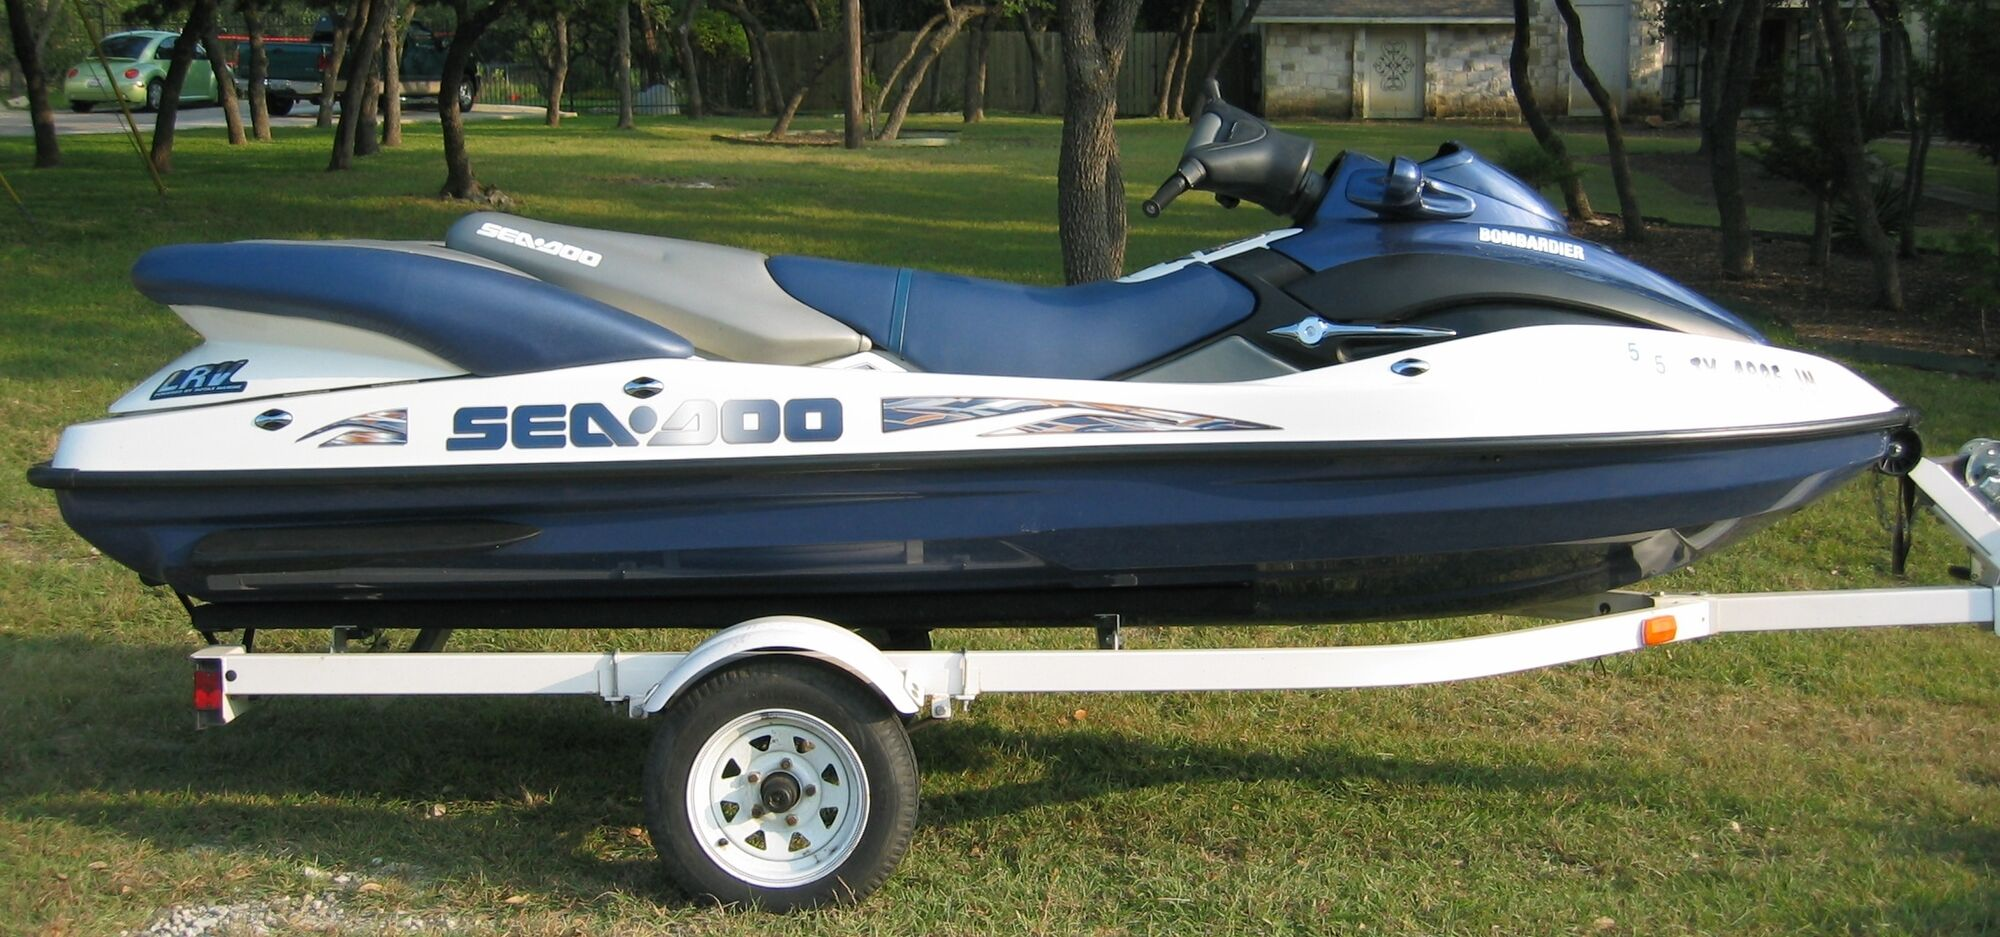 2000 seadoo gtx millenium edition owners manual